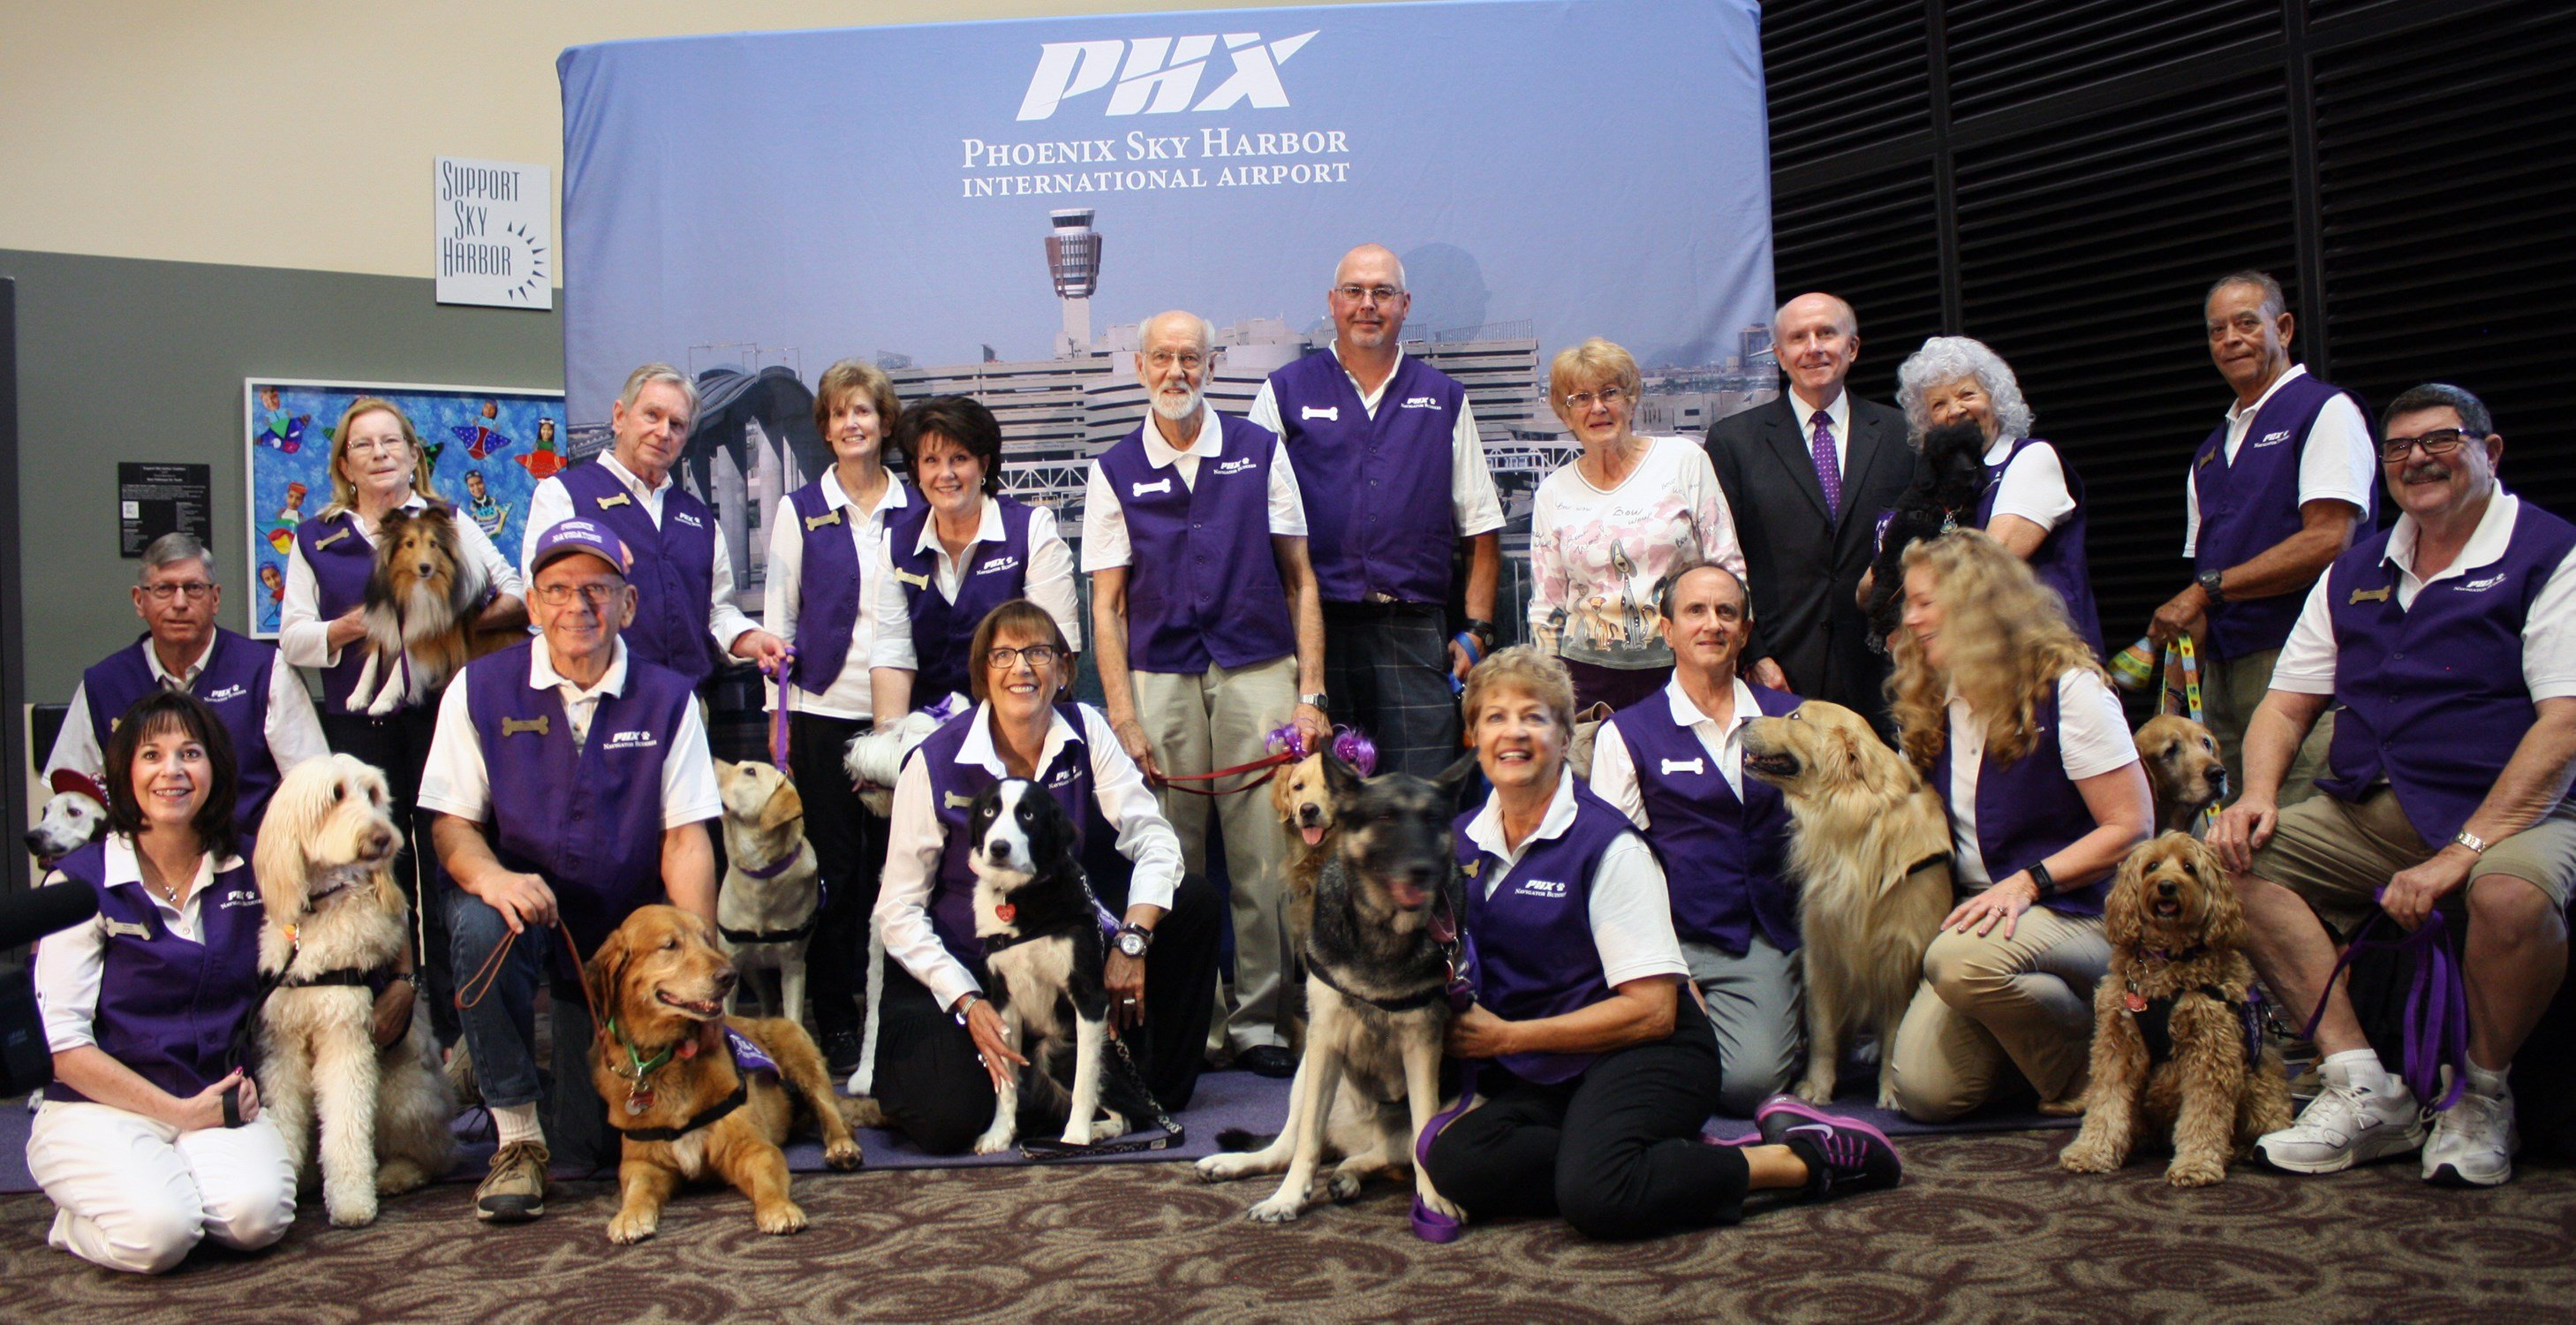 Councilwoman Thelda Williams and Director of Aviation Services Jim Bennett with the Navigator Buddies. (Source: City of Phoenix)